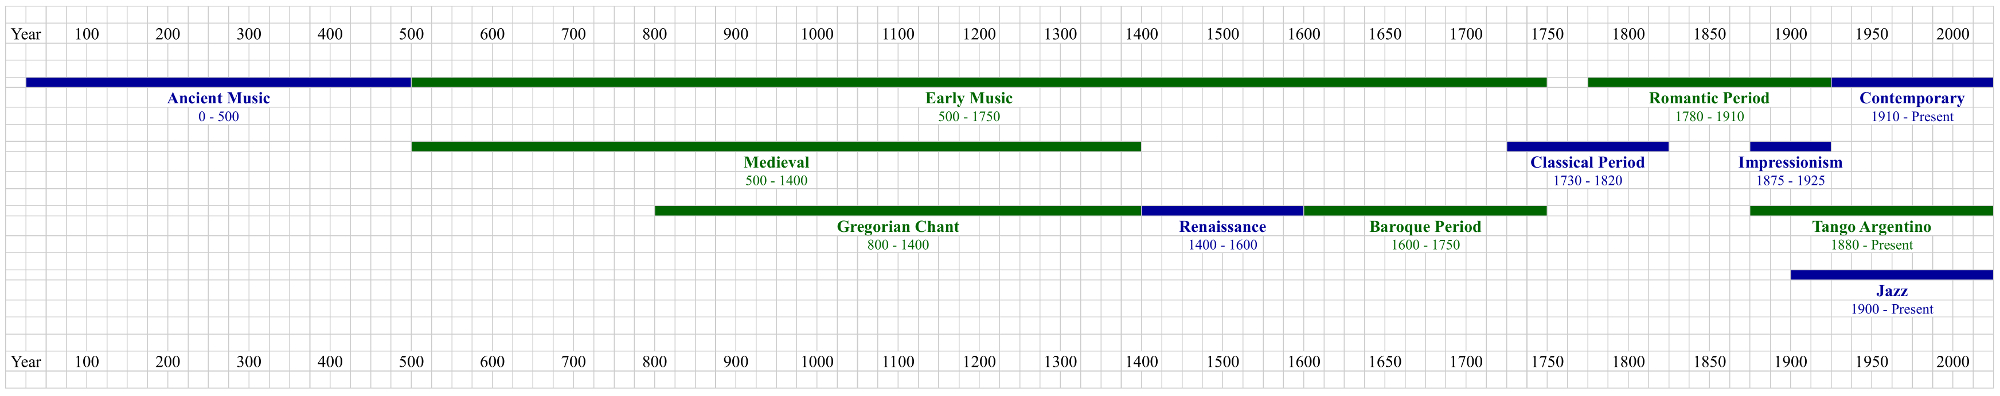 Diagram: Musical Periods